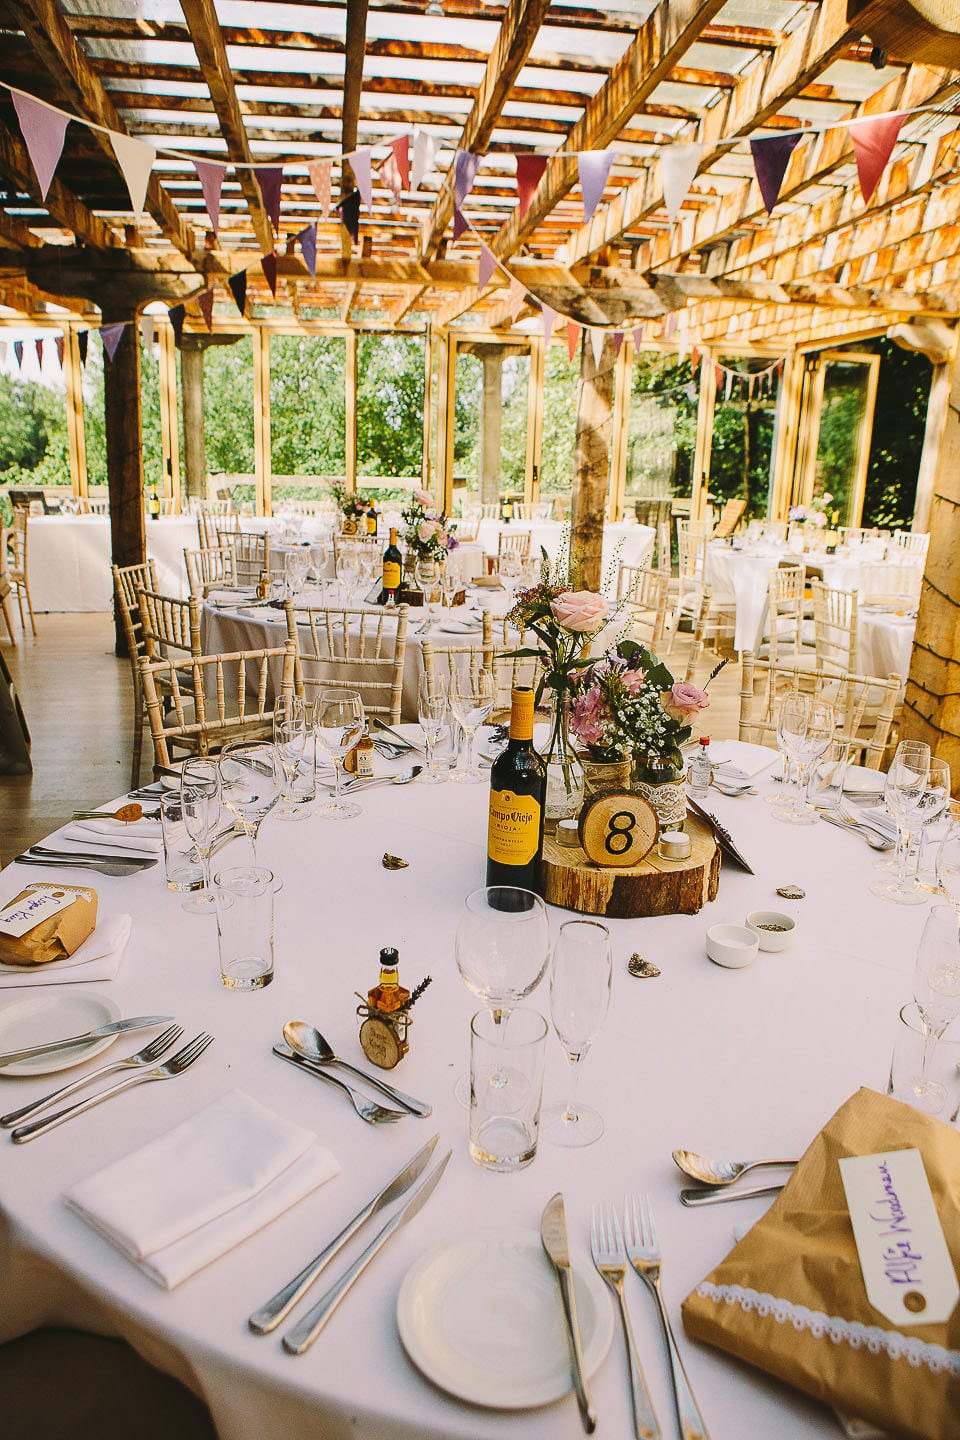 View of the tables and room set for wedding breakfast at Abbey House Gardens